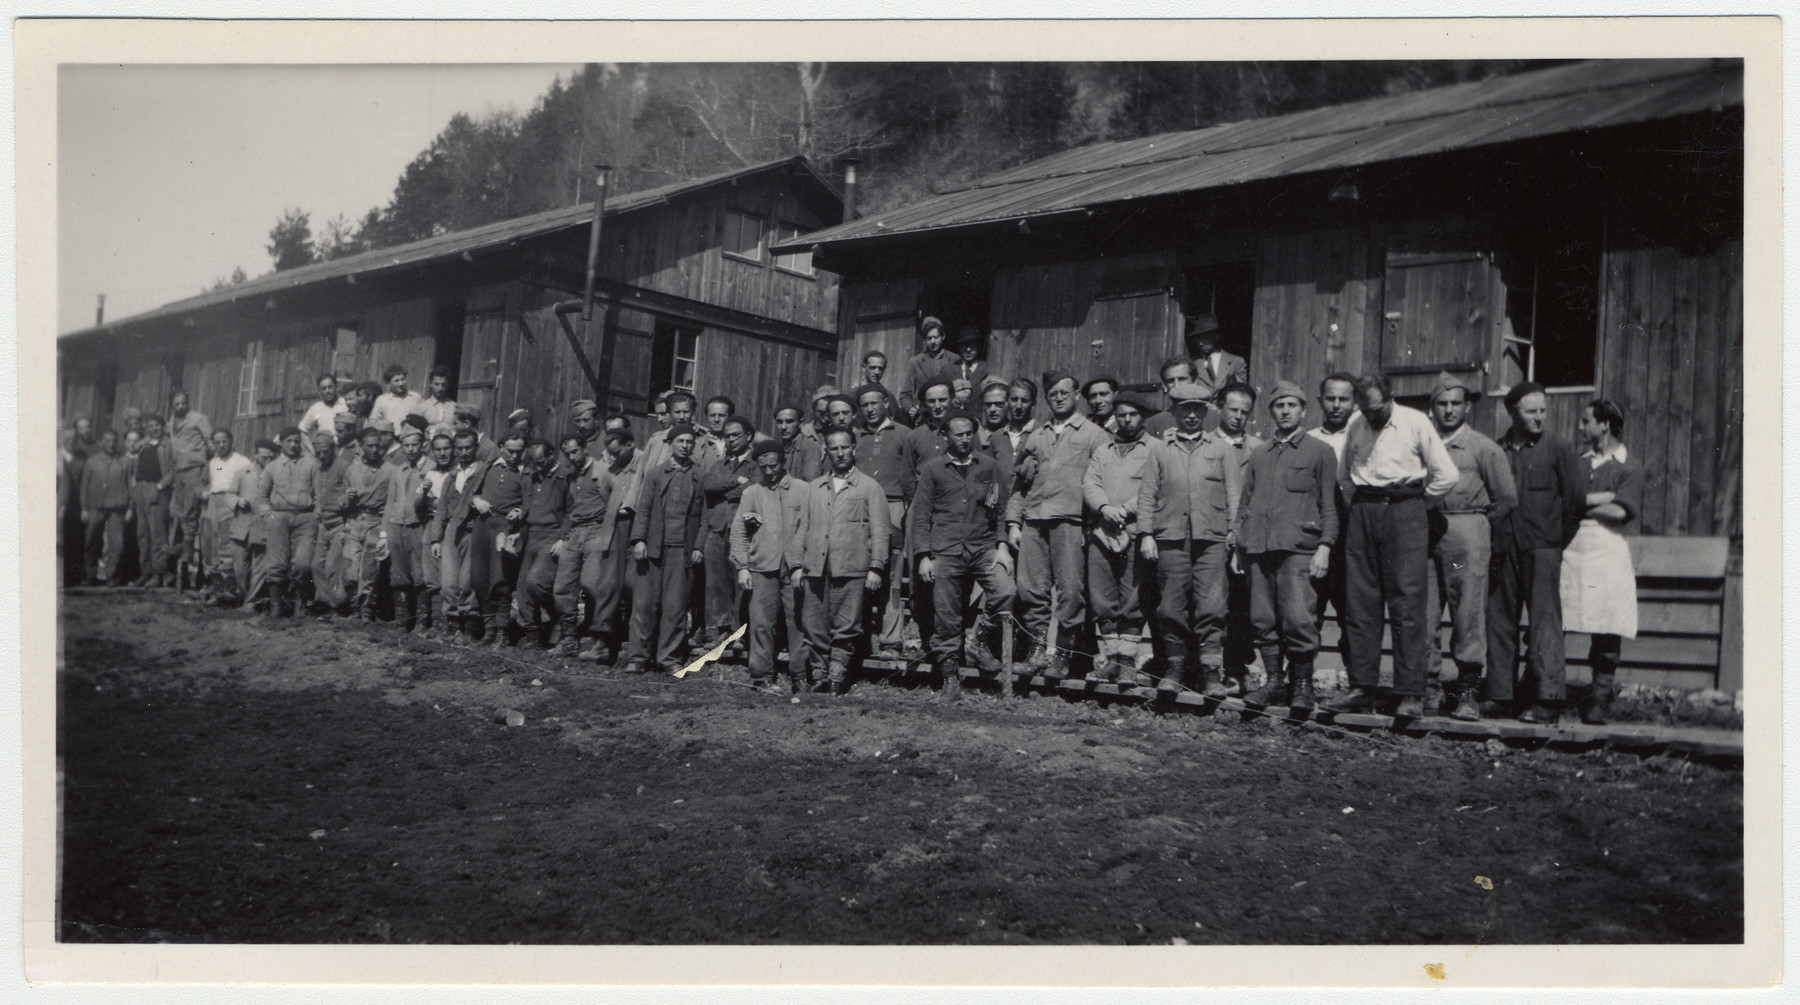 Group portrait of Jewish internees in an unidentified Swiss labor camp.  Max Schattner is pictured in the back in row standing underneath the middle window on the right, wearing a black cap.